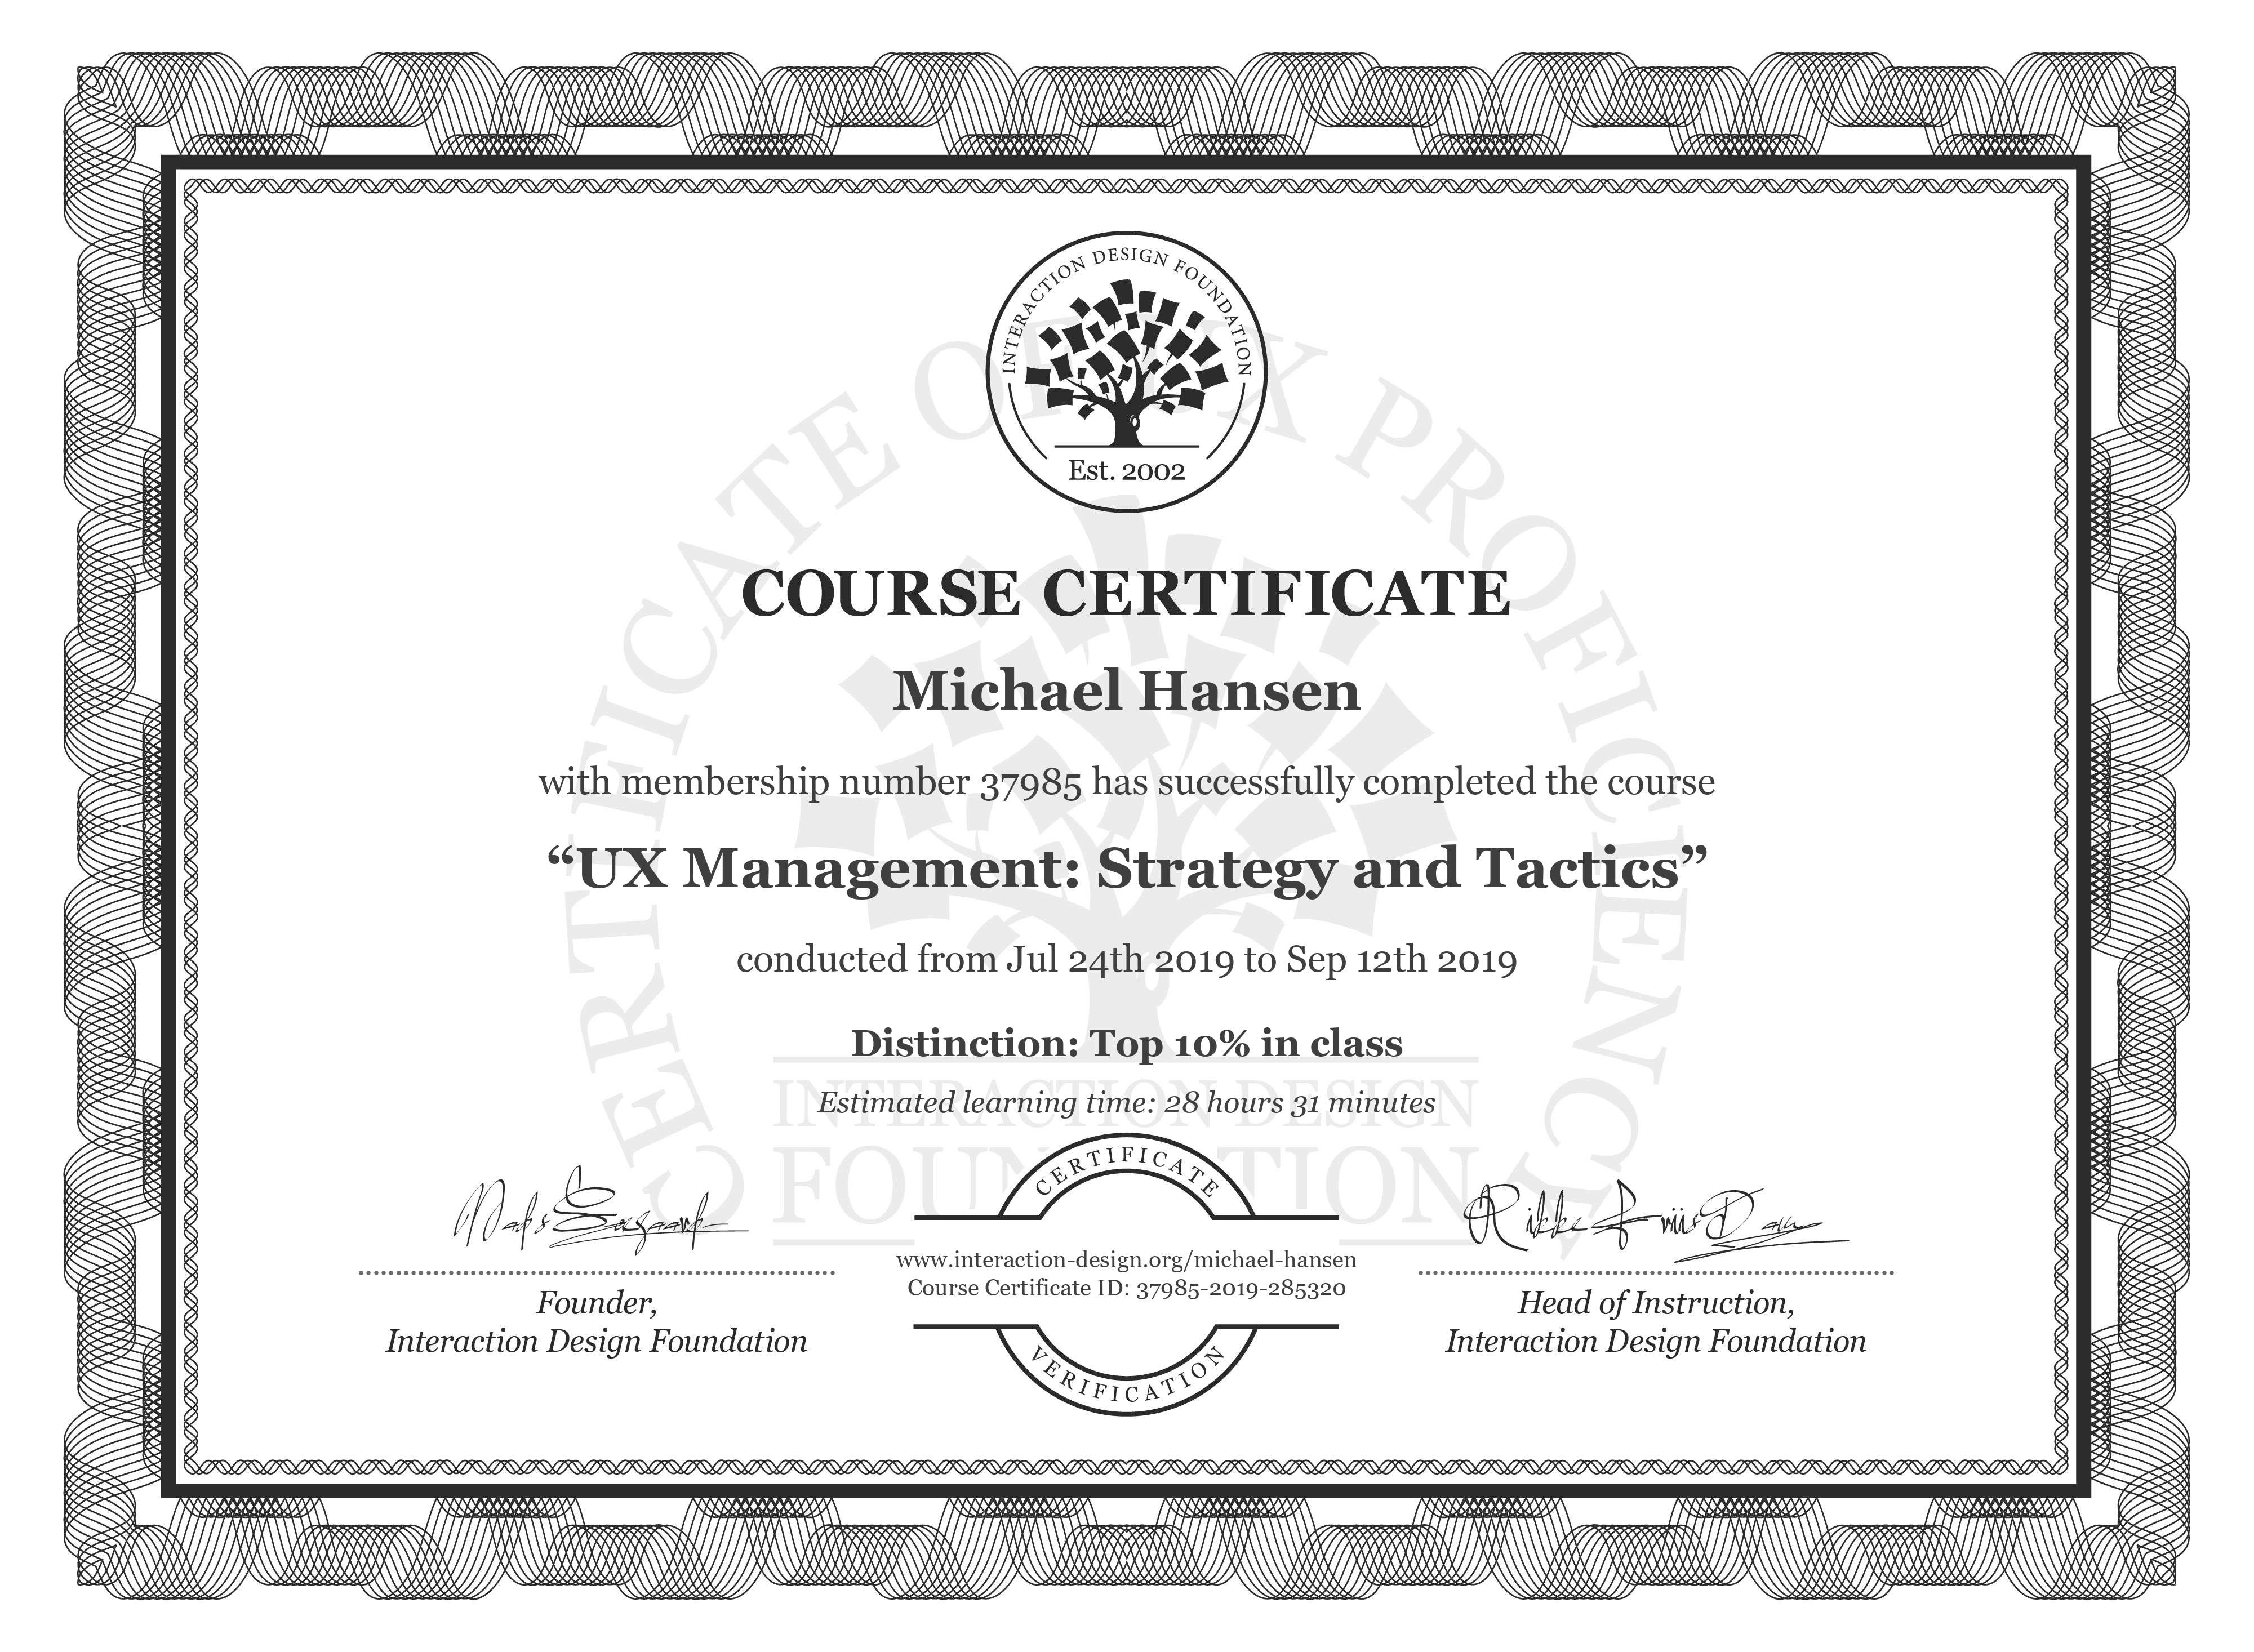 Michael Hansen's Course Certificate: UX Management: Strategy and Tactics